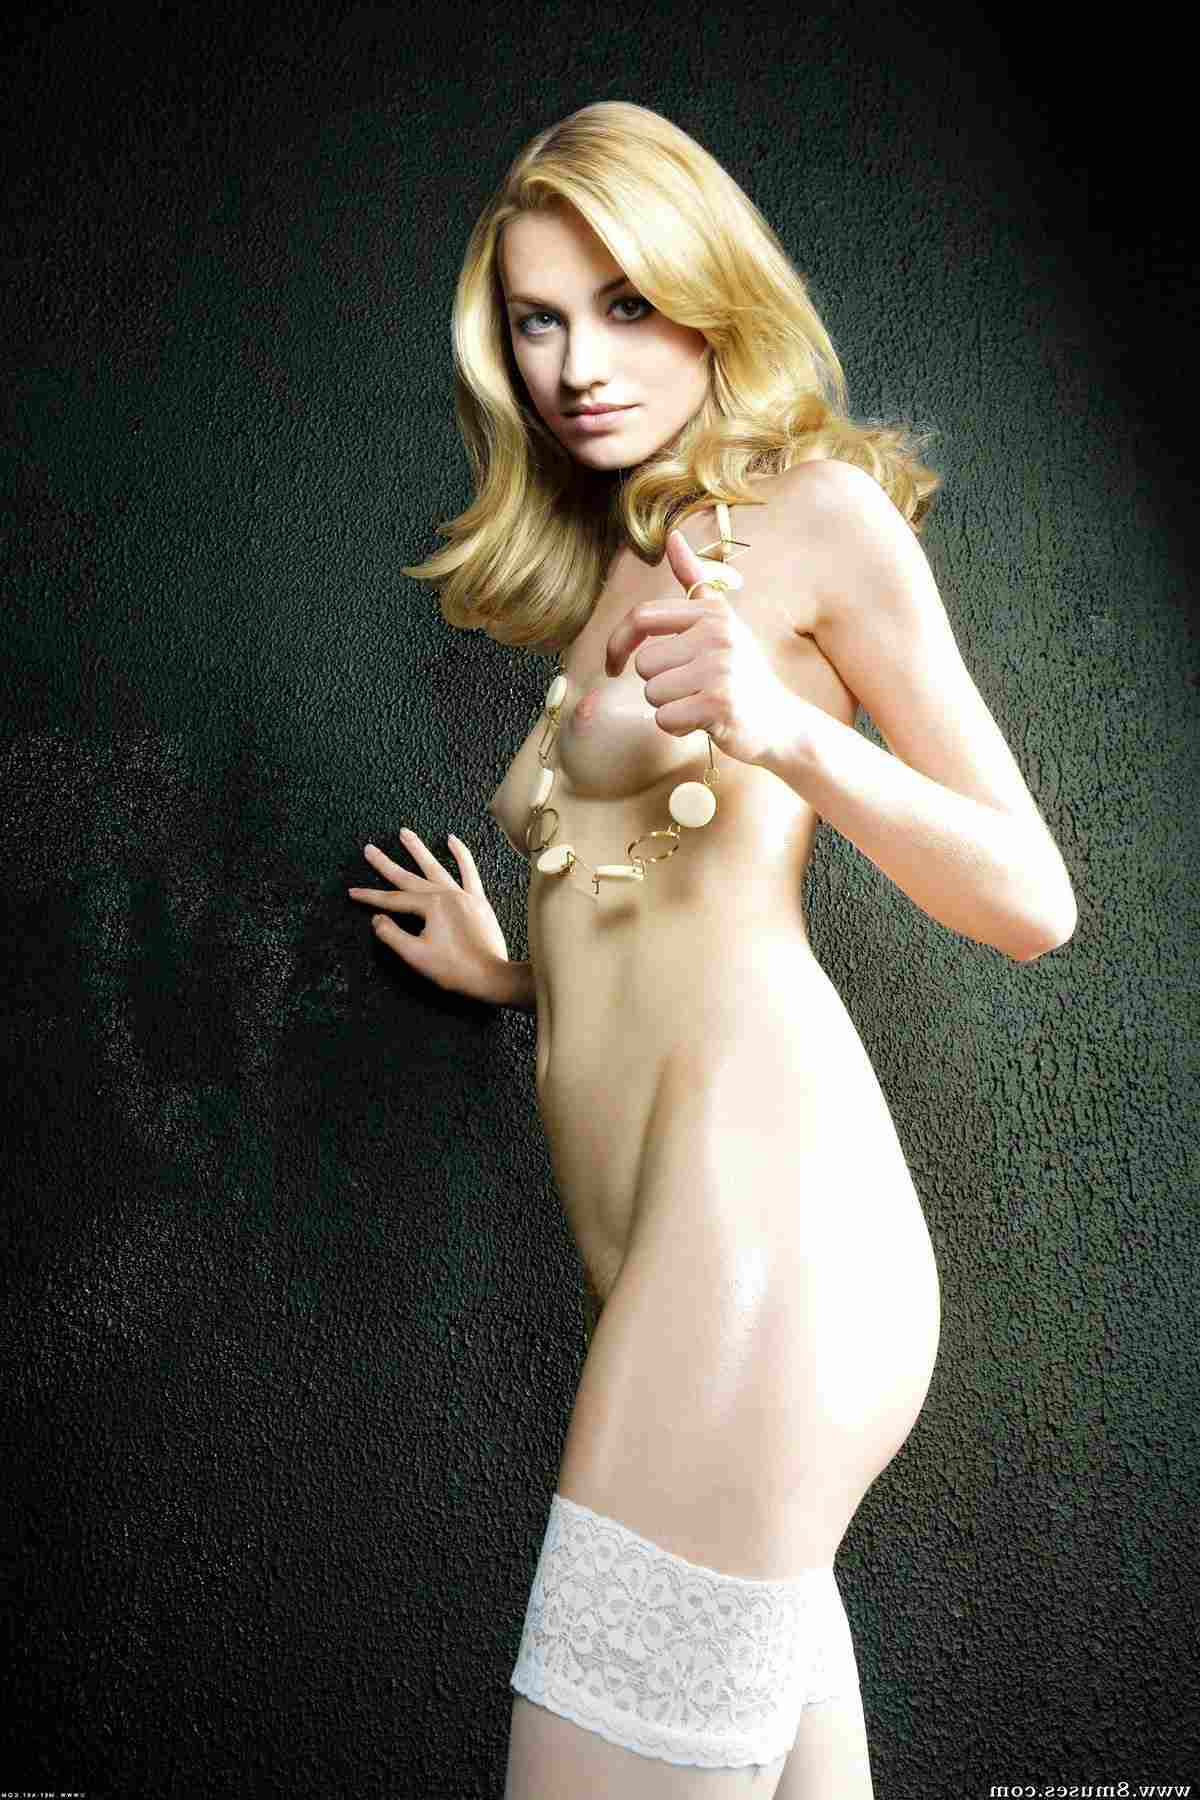 Fake-Celebrities-Sex-Pictures/Yvonne-Strahovski Yvonne_Strahovski__8muses_-_Sex_and_Porn_Comics_7.jpg